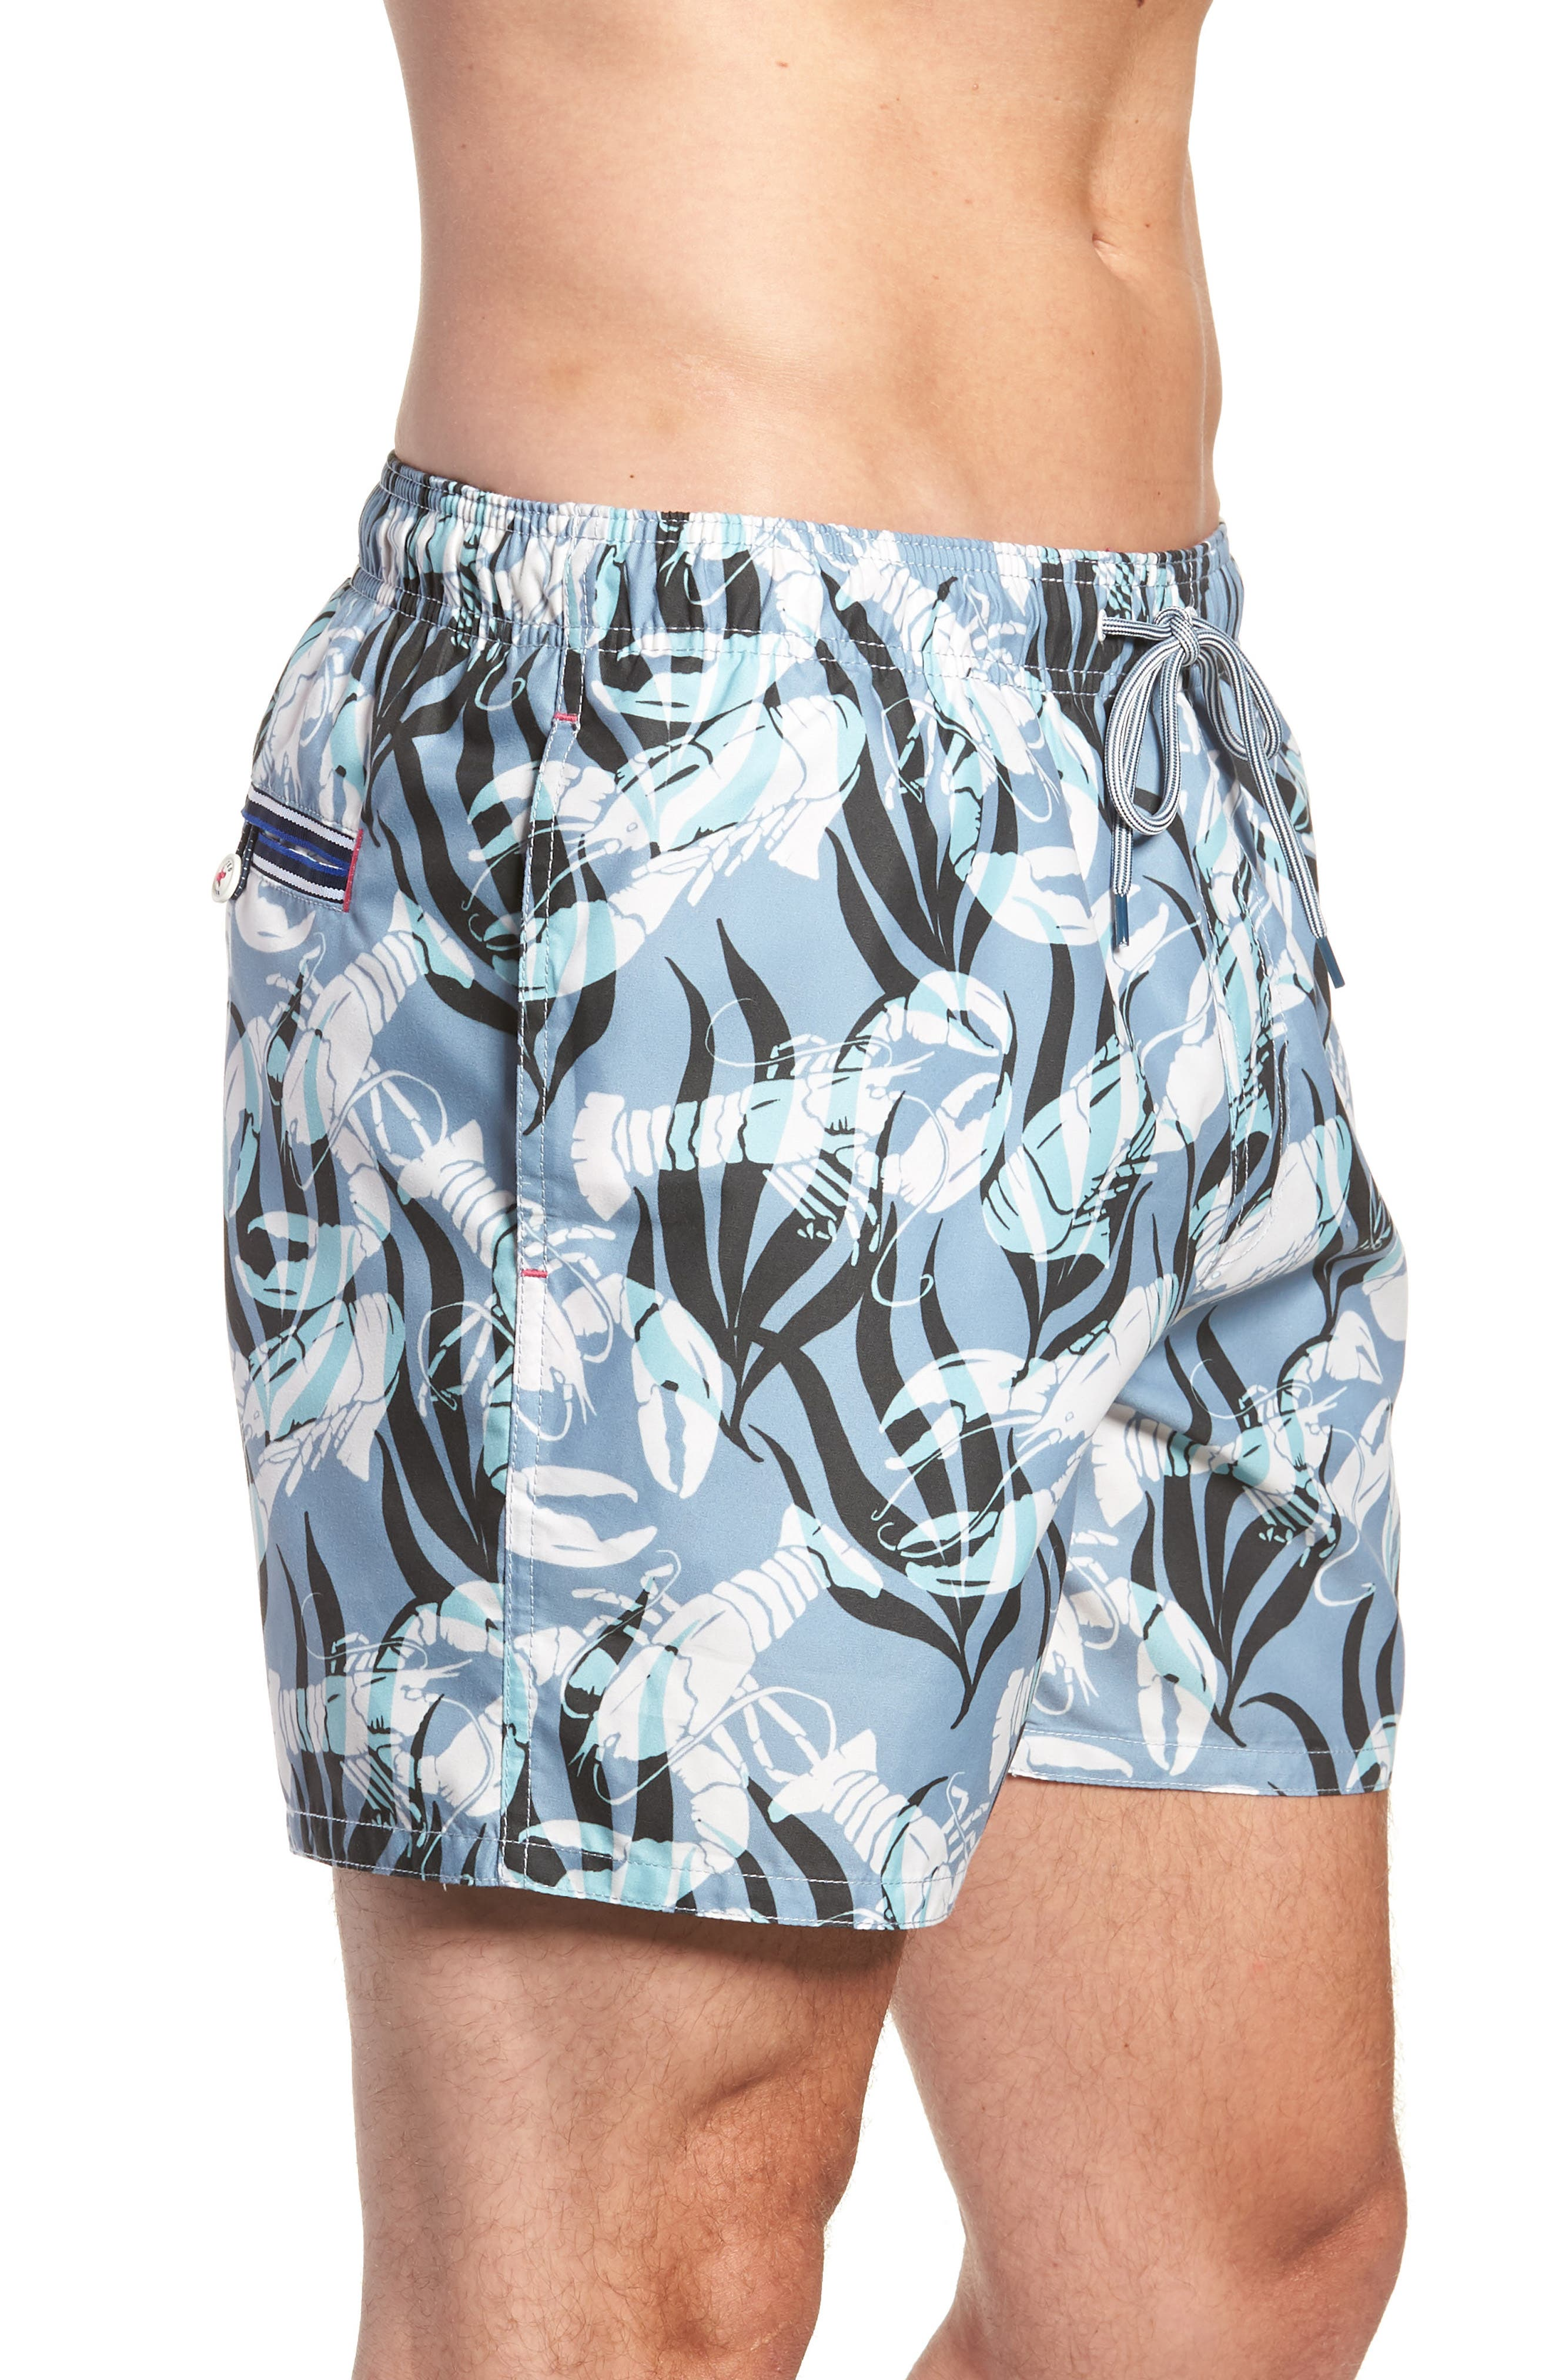 Yalow Slim Fit Lobster Swim Trunks,                             Alternate thumbnail 3, color,                             BLUE